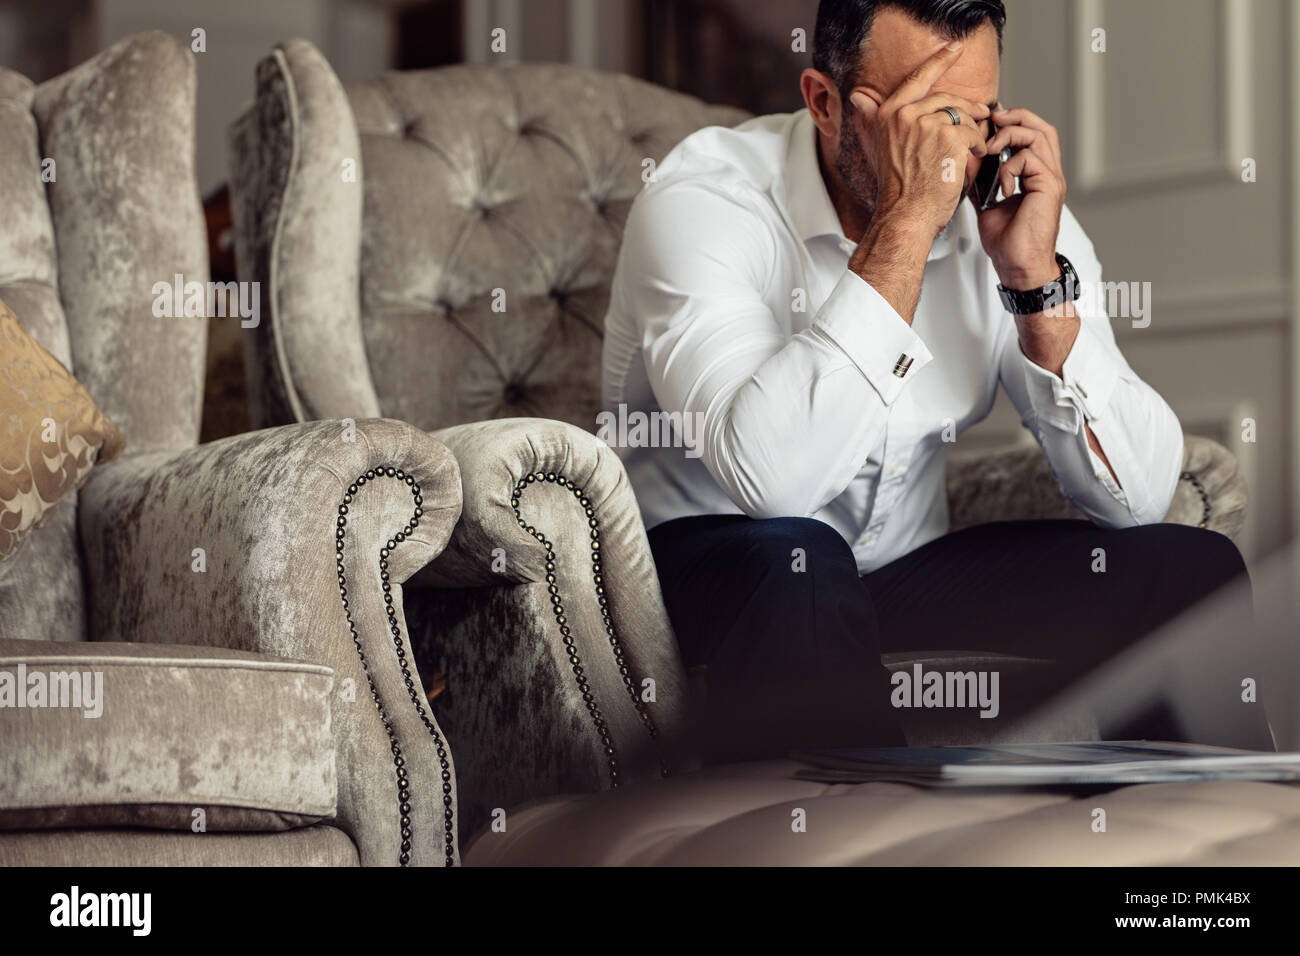 Portrait of stressed mature businessman sitting in a hotel room and talking on phone. Businessman sitting on couch with hand on head talking on cell p - Stock Image